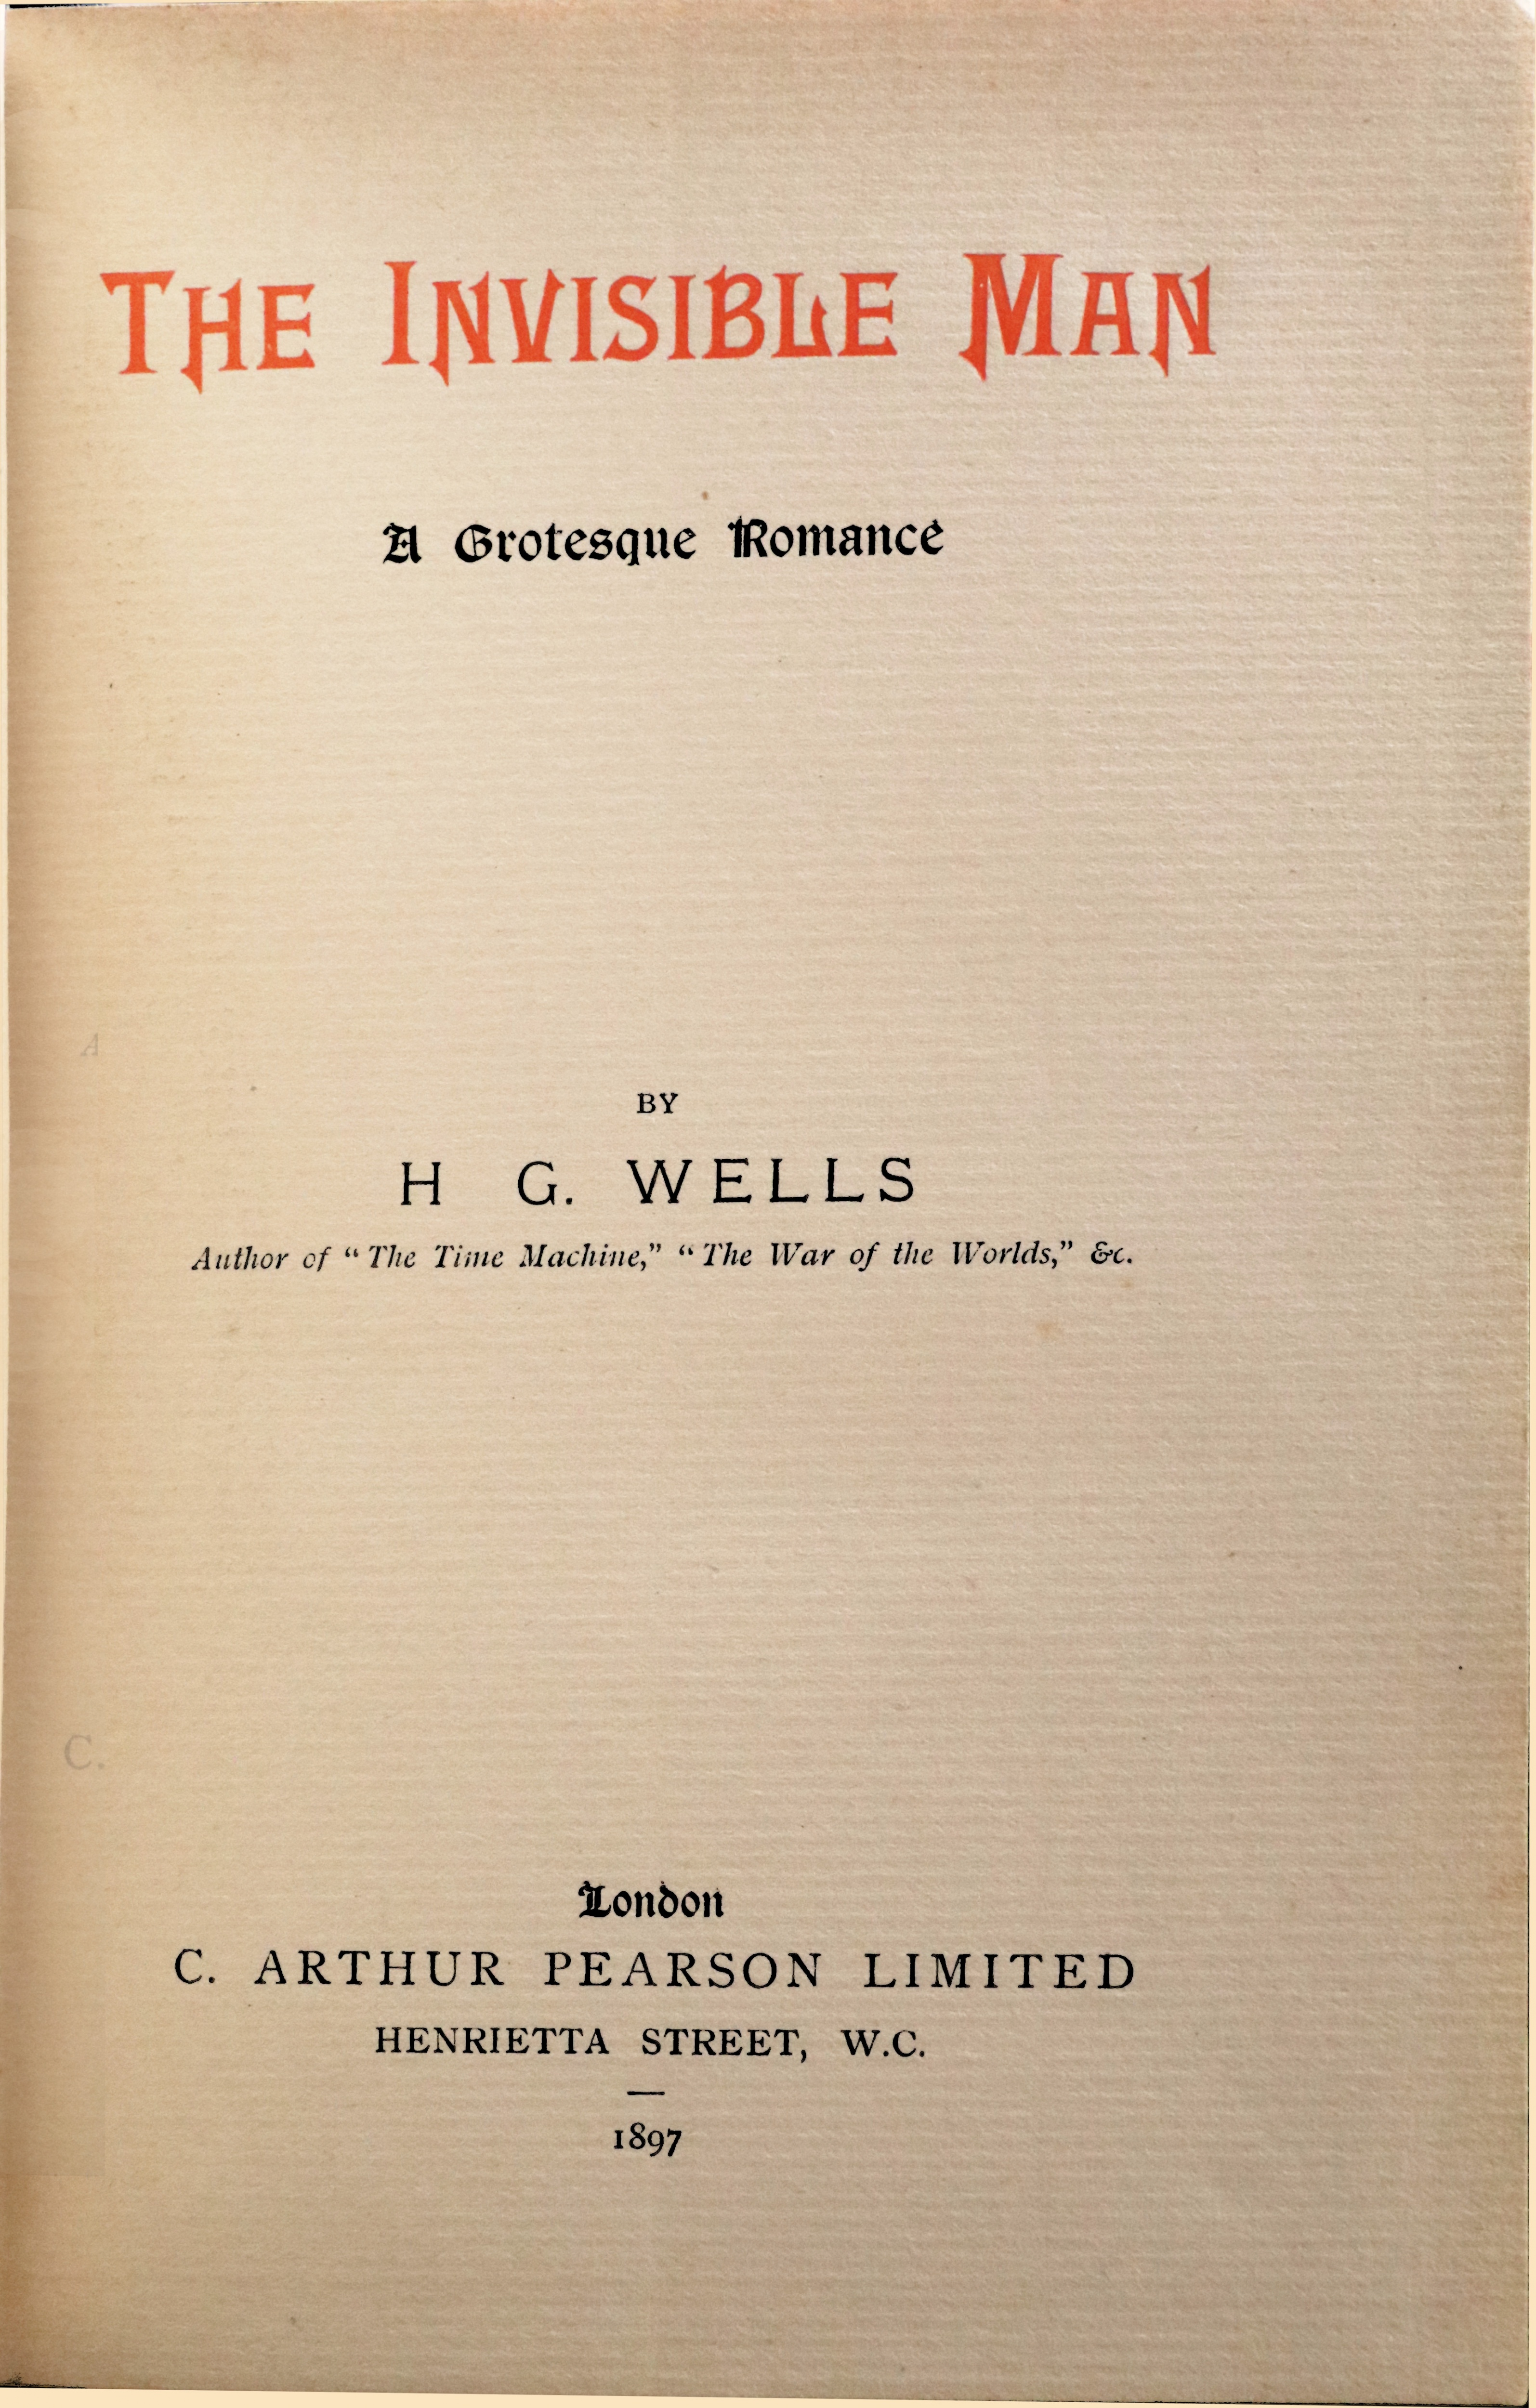 rare-books-first-edition-precious-books-WELLS-Herbert-George-The-Invisible-Man-